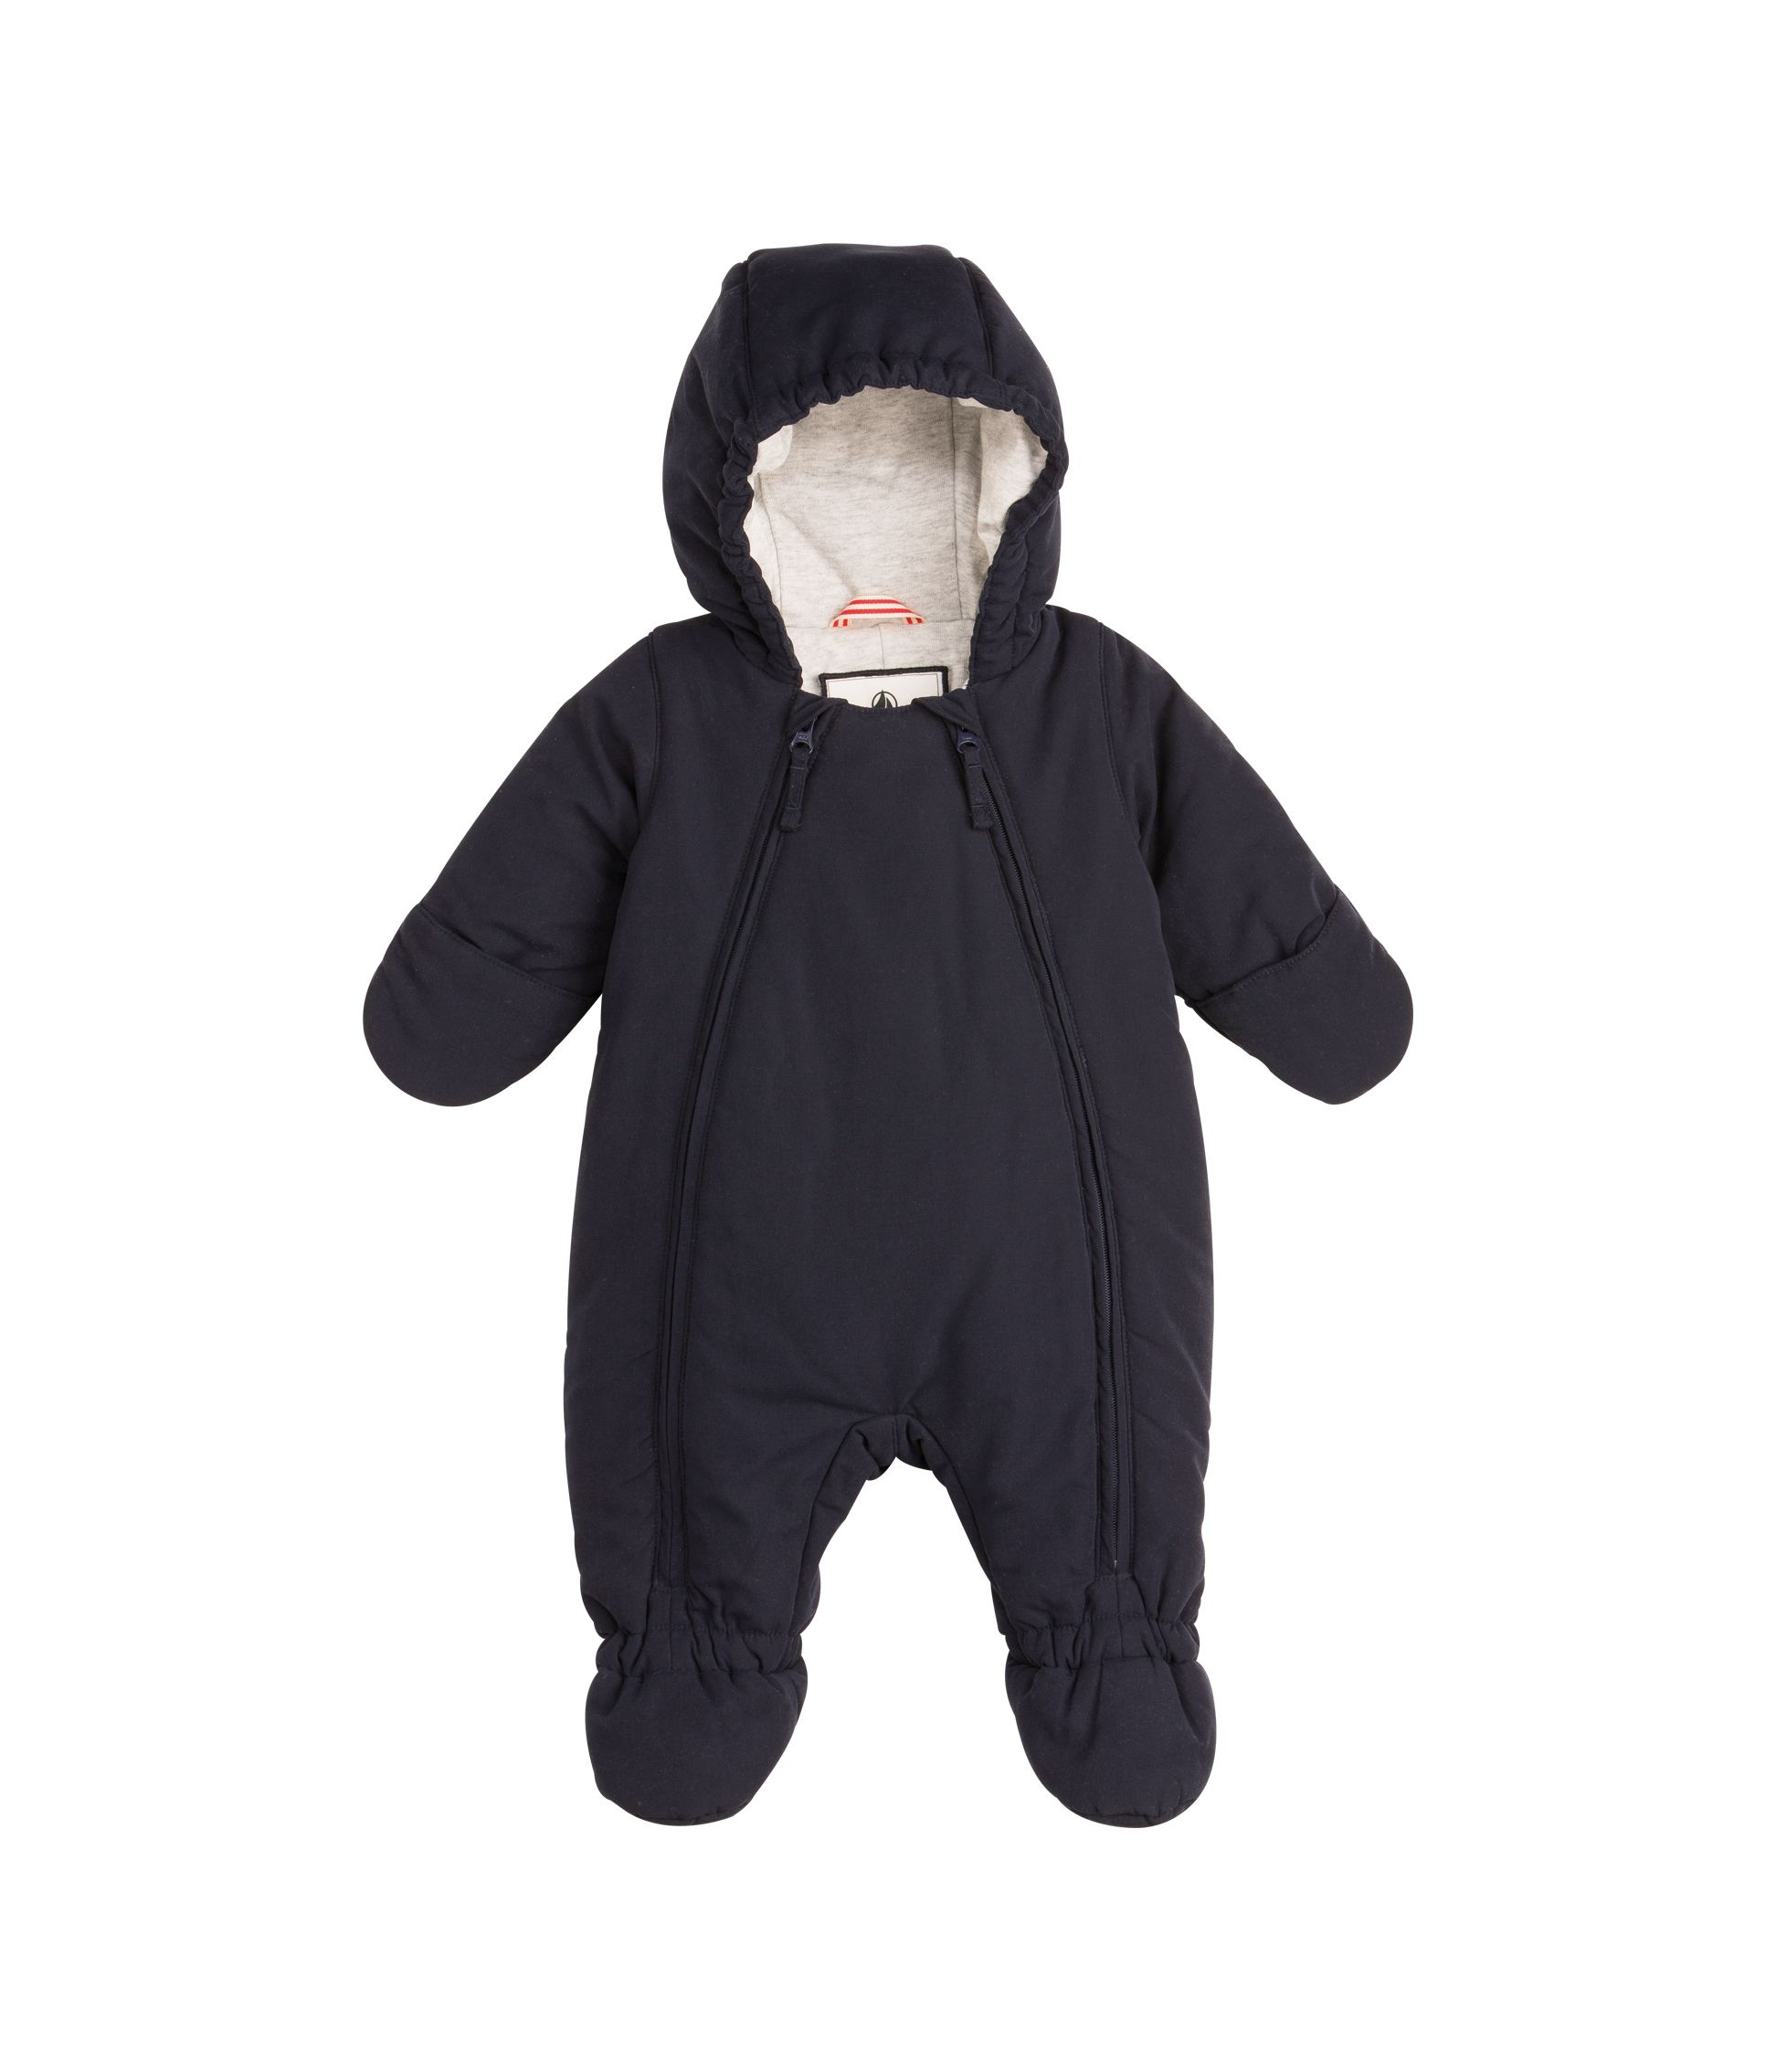 Unisex baby hooded snowsuit